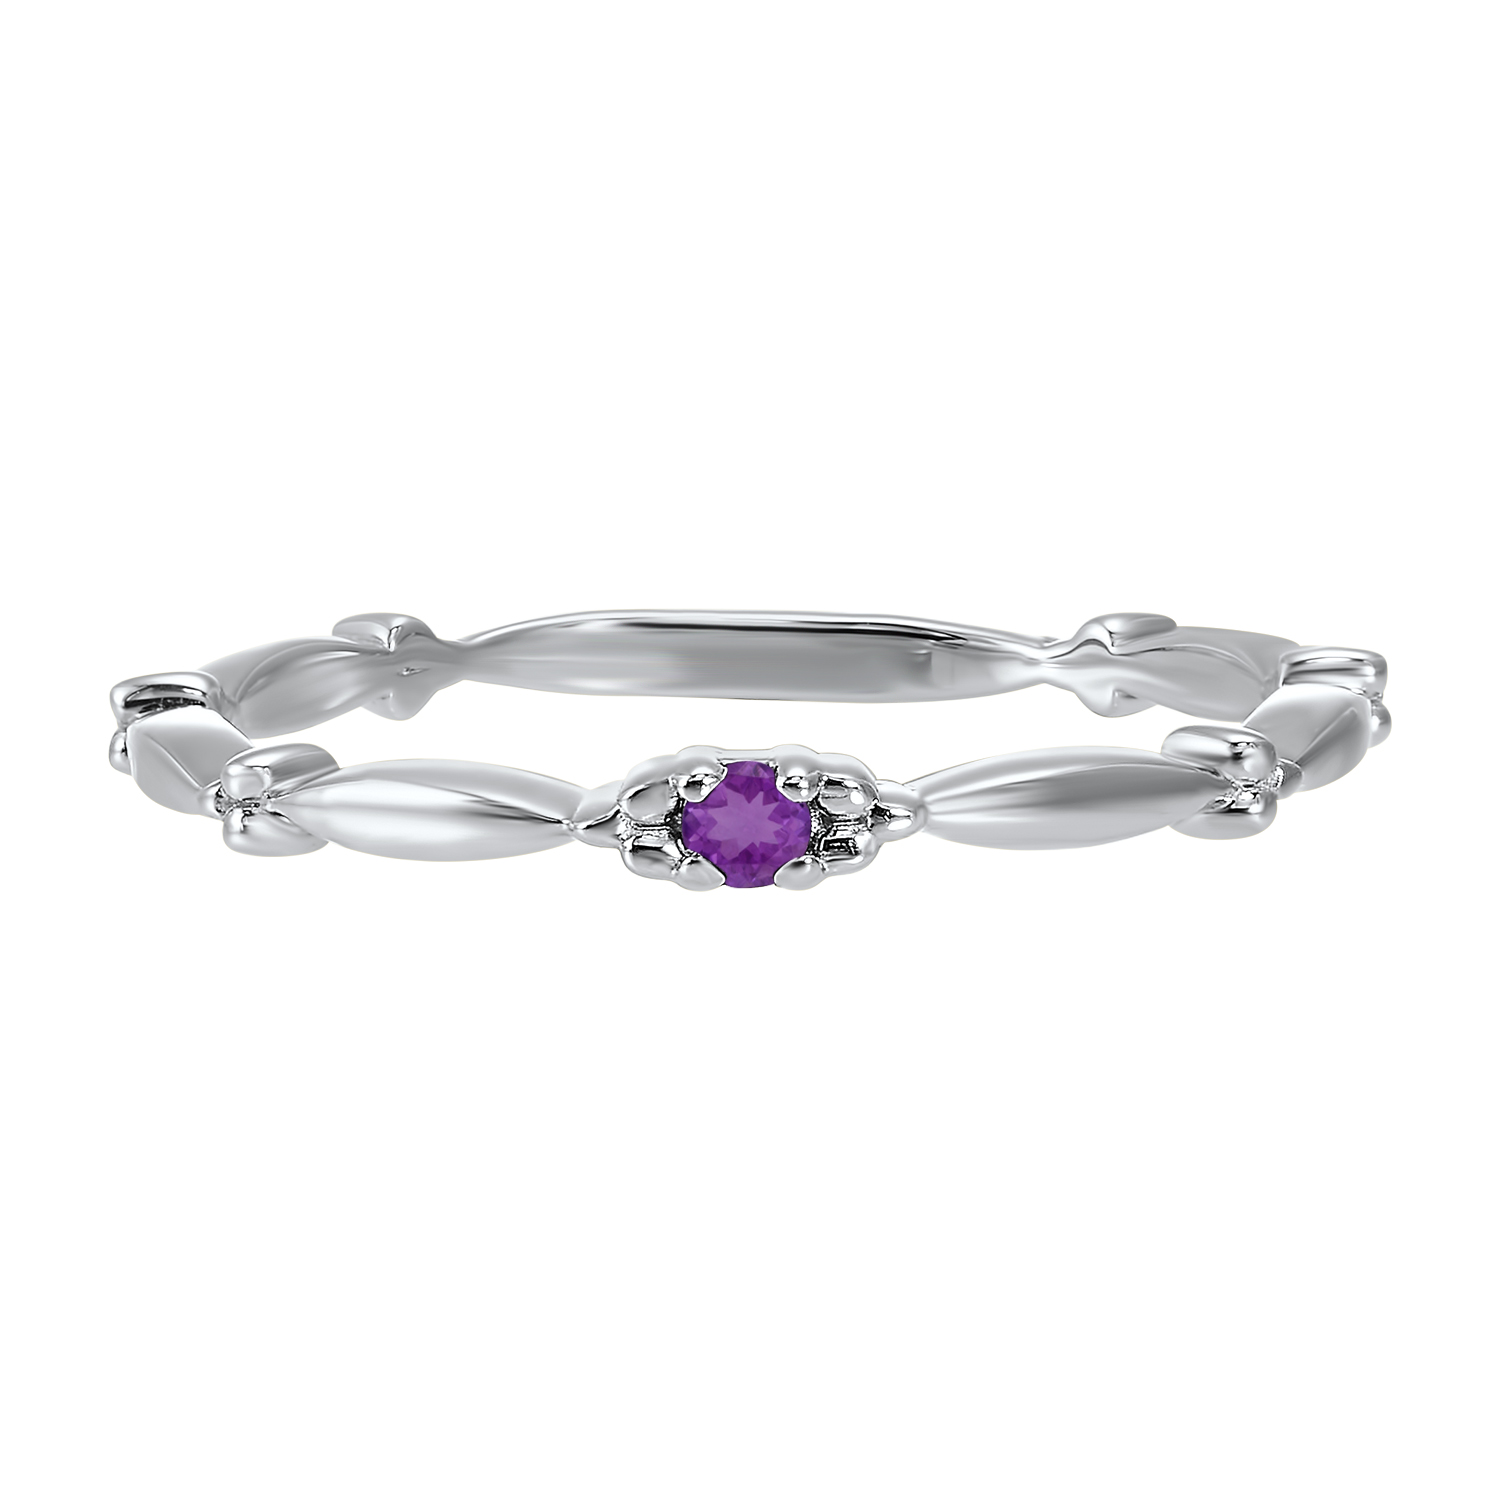 10K White Gold Stackable Prong Amethyst Band Moseley Diamond Showcase Inc Columbia, SC